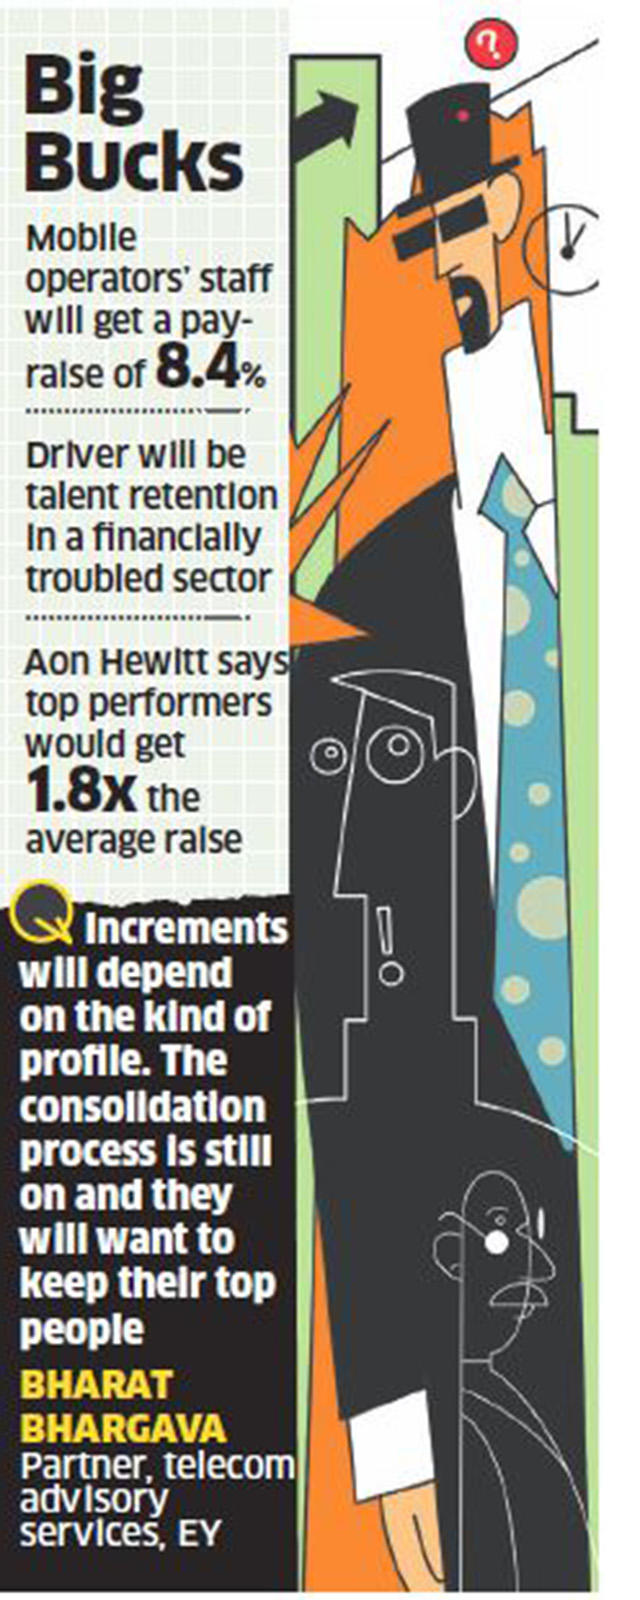 Telecom companies may offer better salary hikes next year